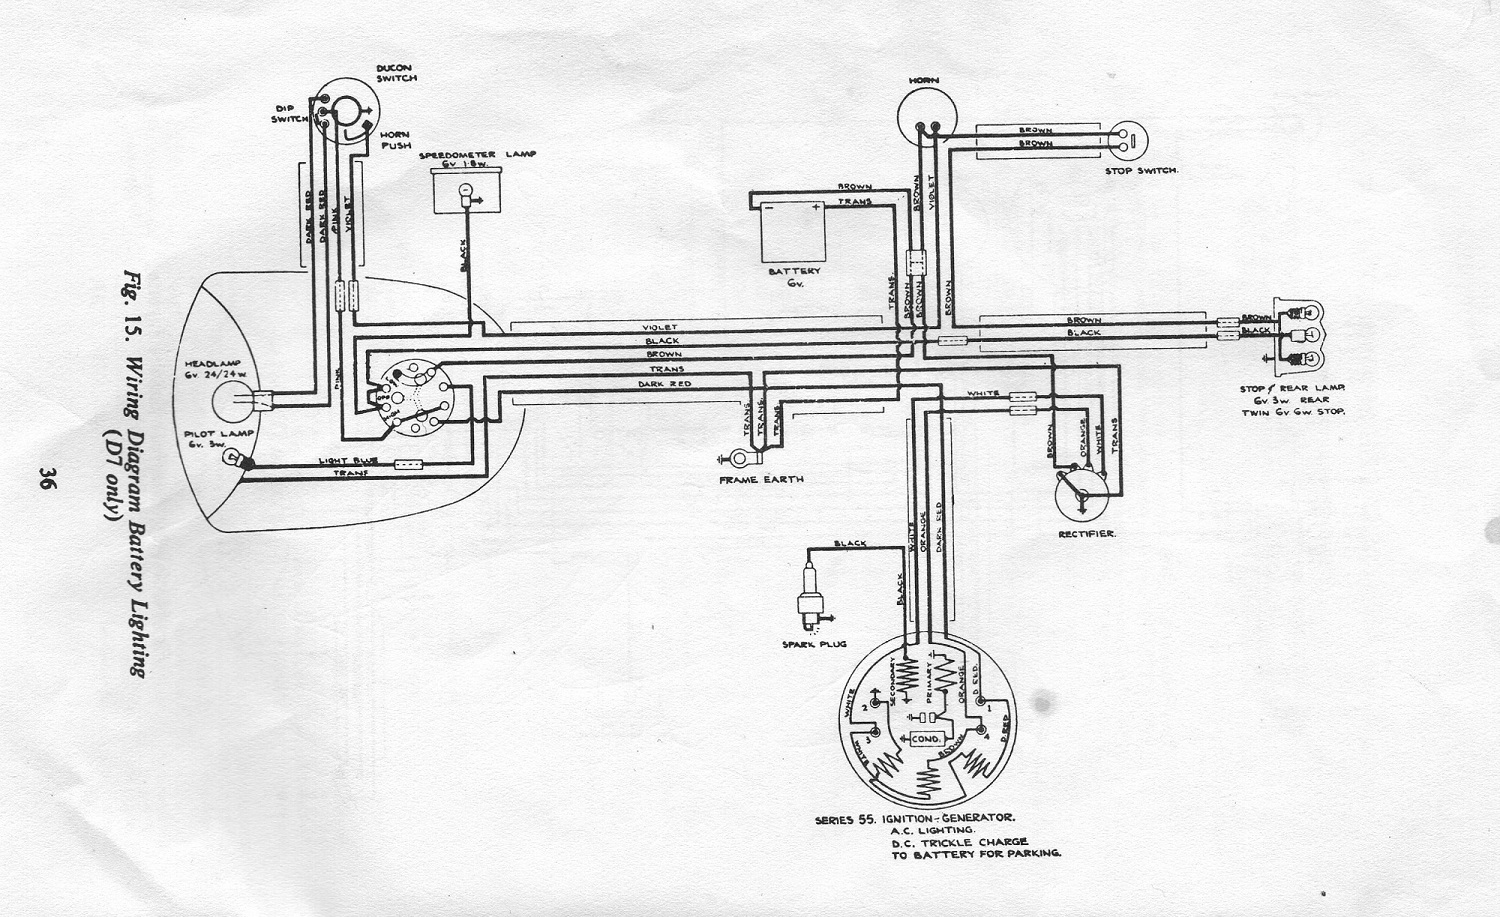 D7 battery single switch Copy homepage bsa bantam d7 wiring diagram at fashall.co